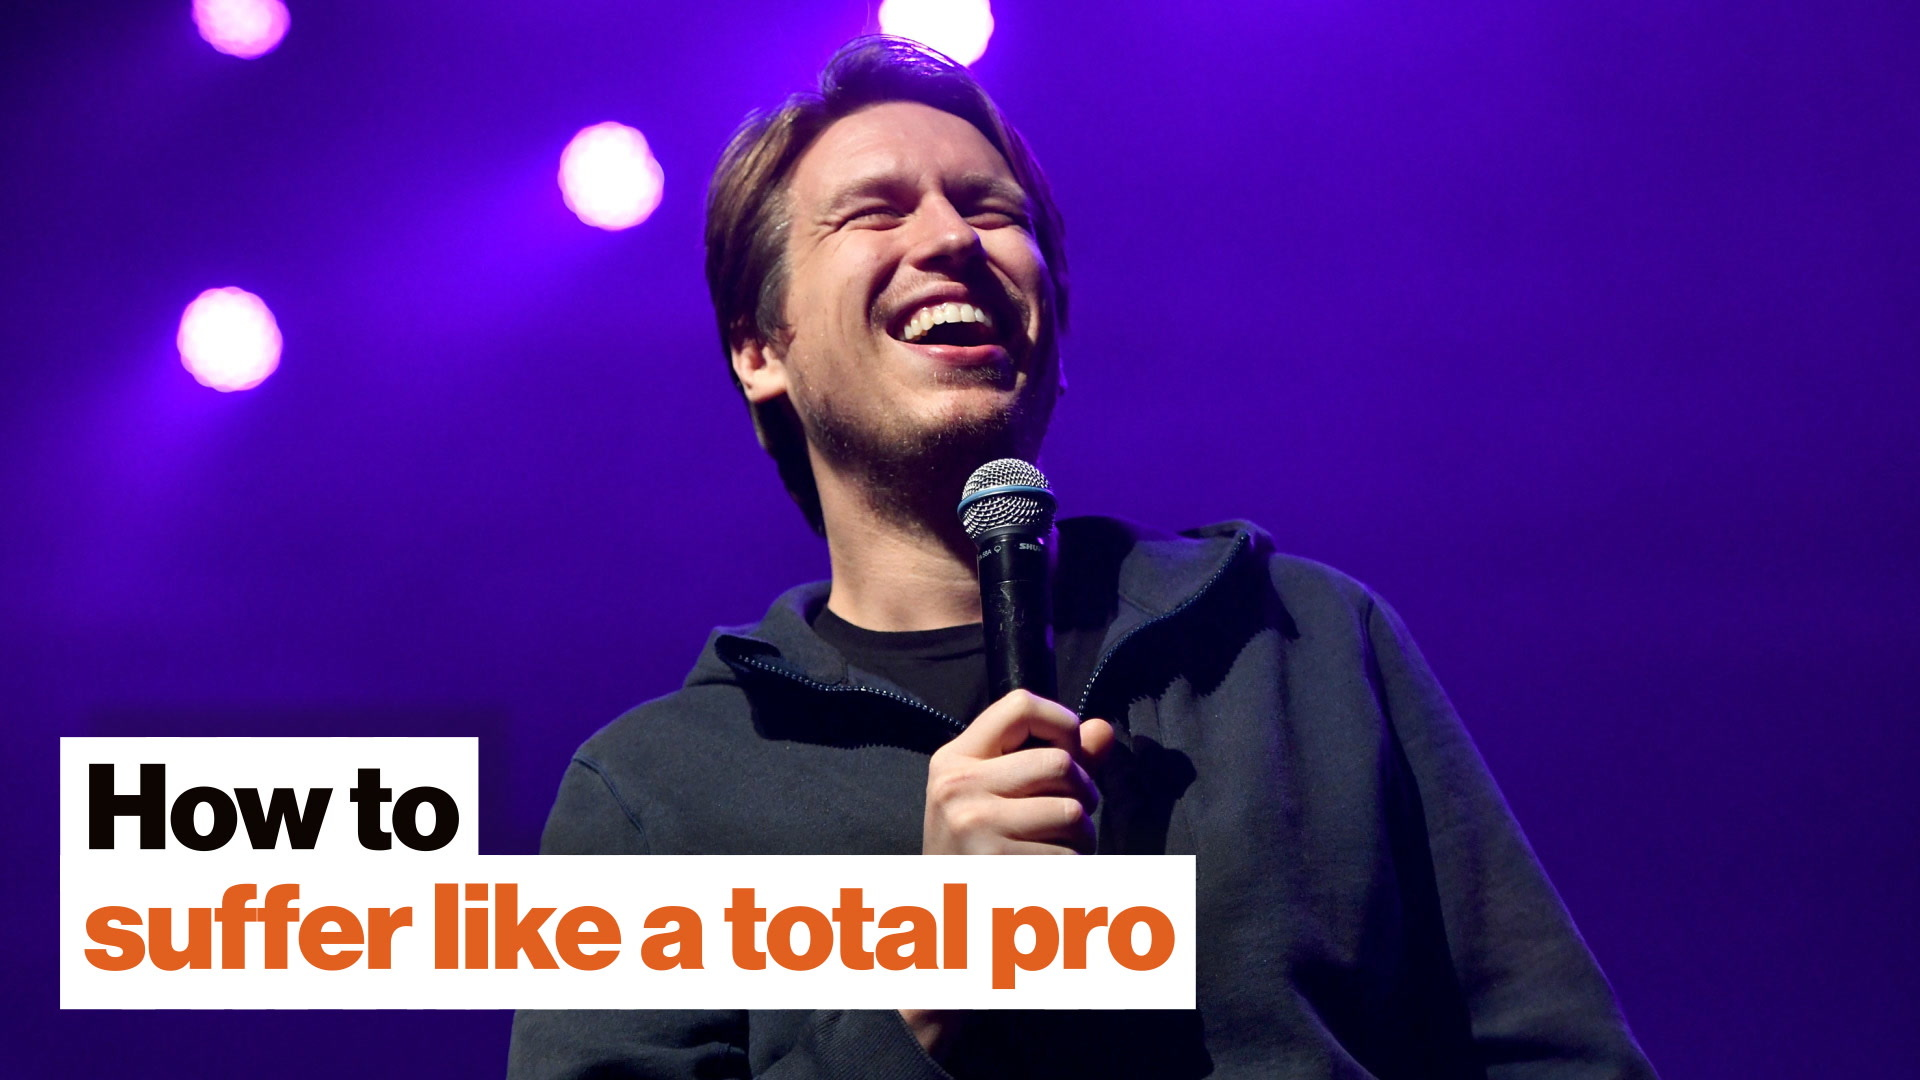 How to suffer like a total pro: Pete Holmes on ego, judgment, and feeling special